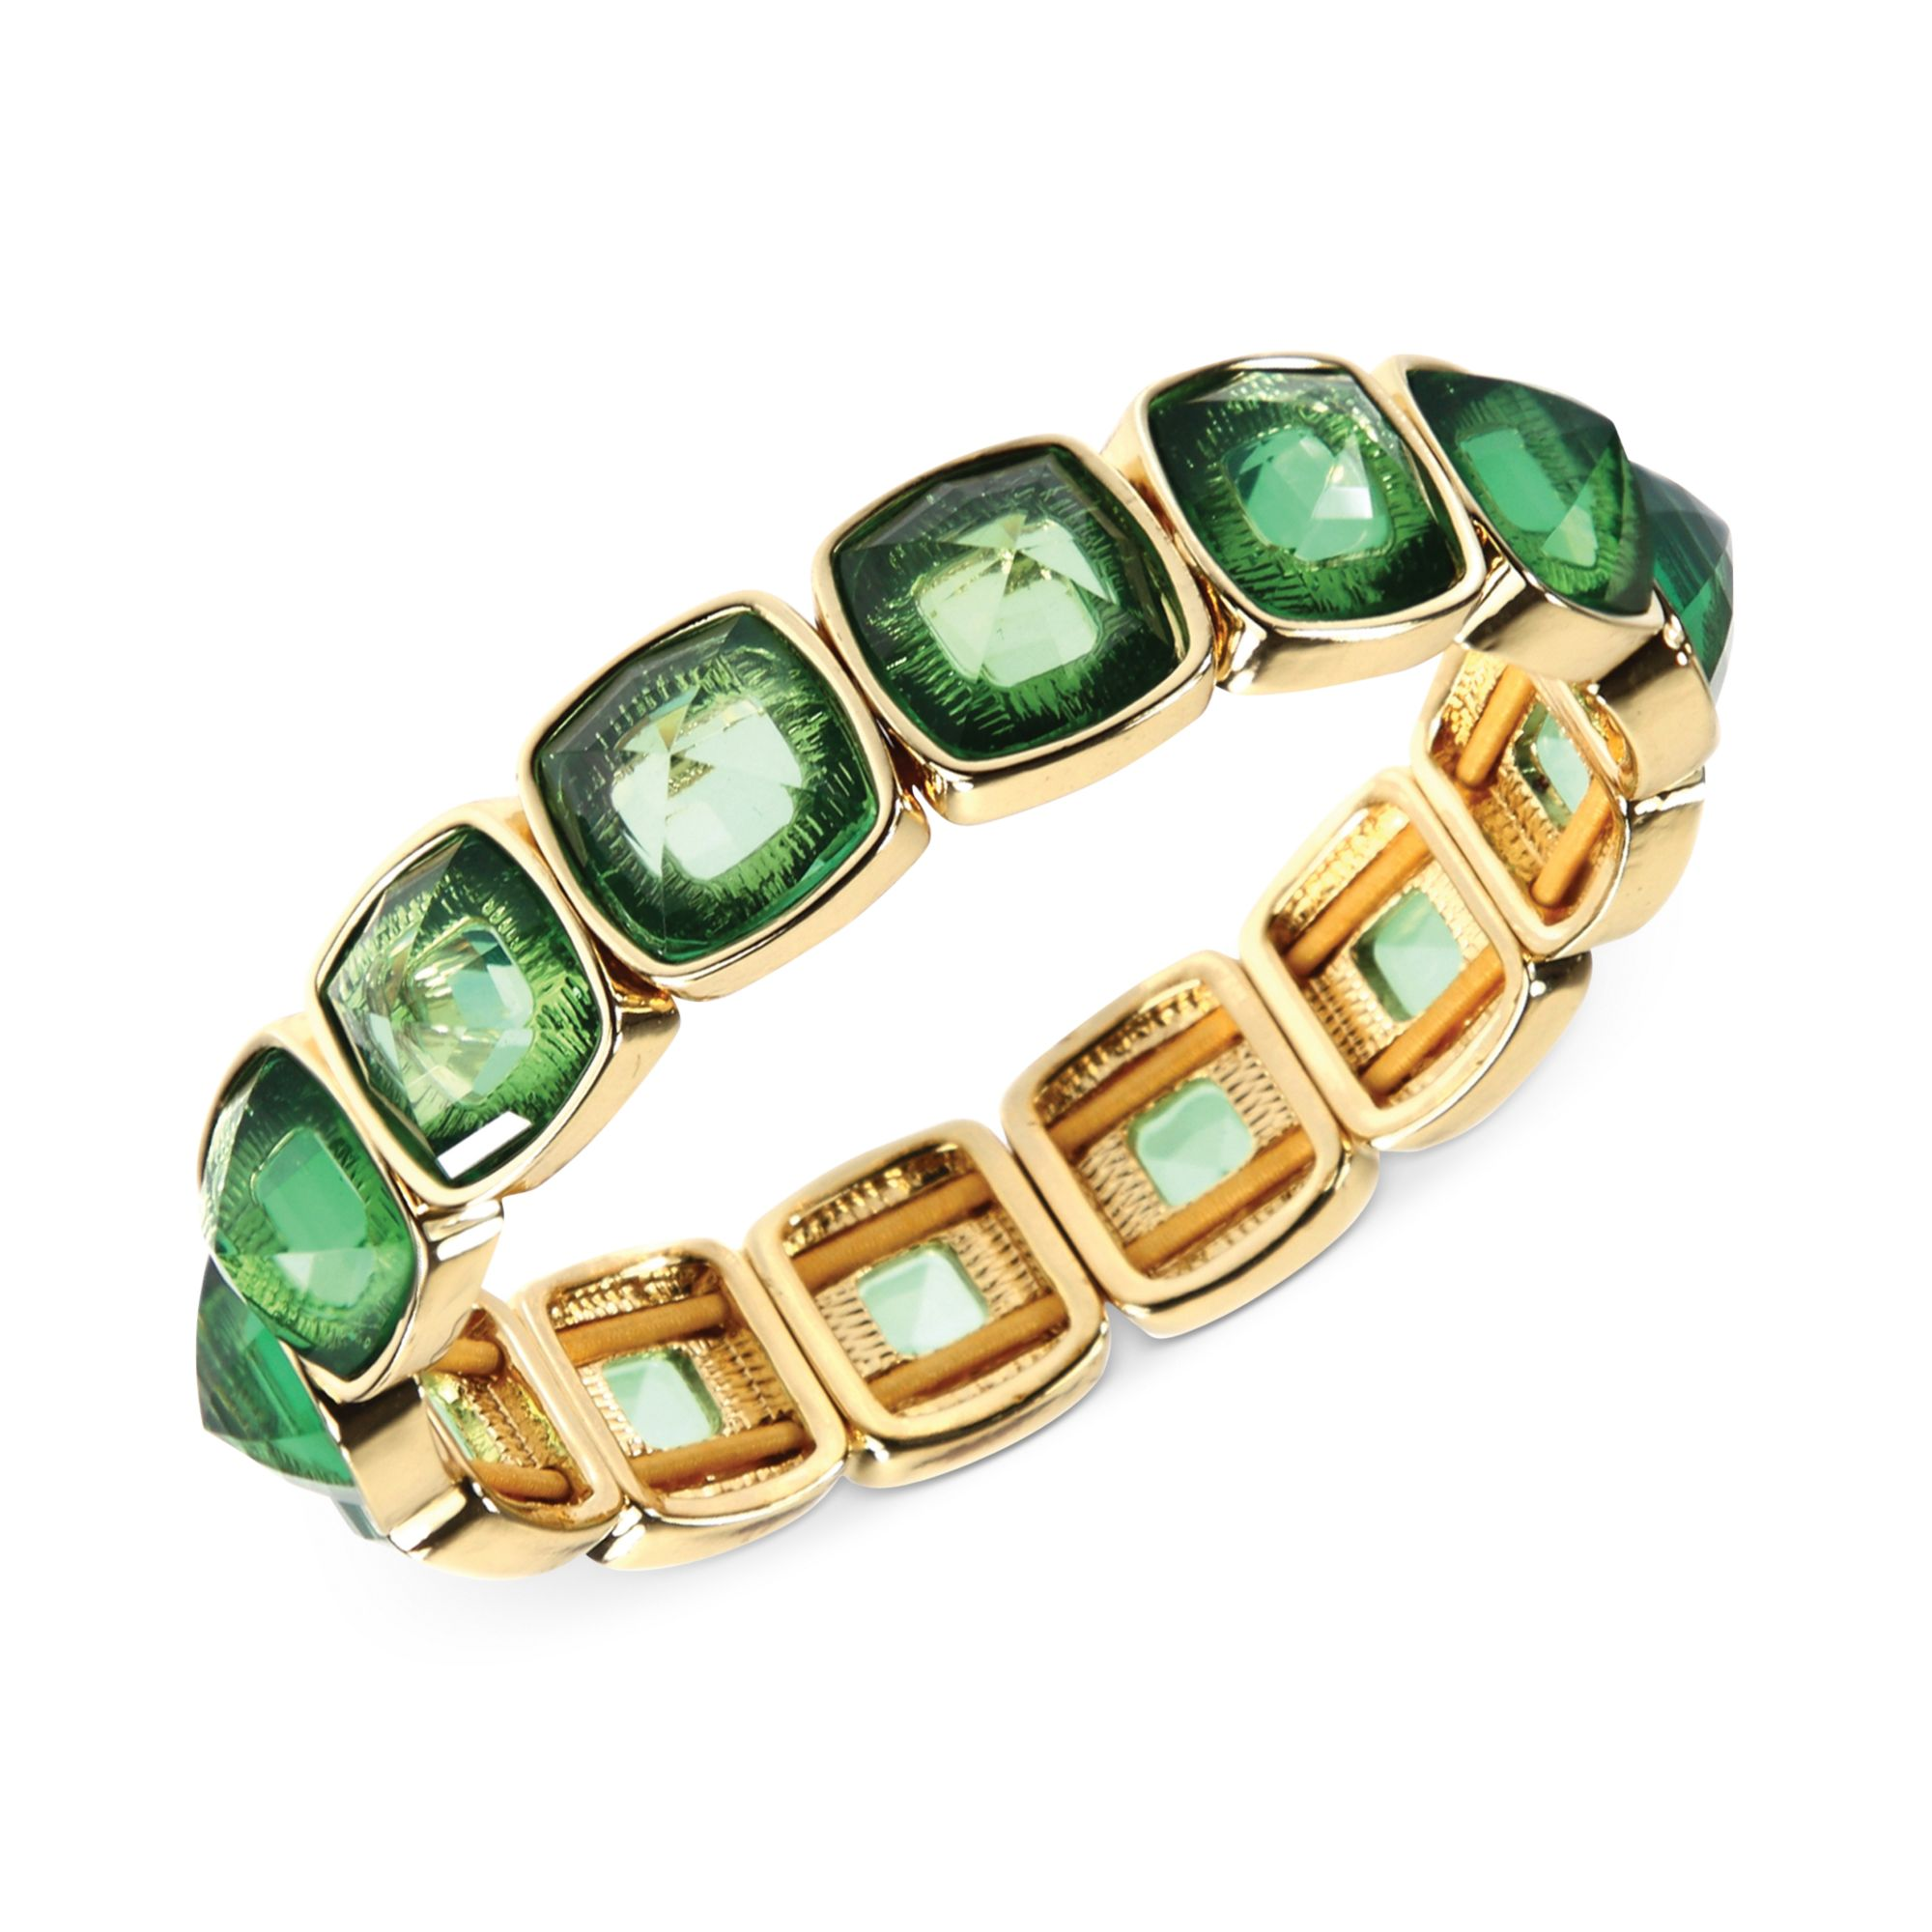 shack set bangles green product and gold beautiful stone this in of own stones white jewelberry